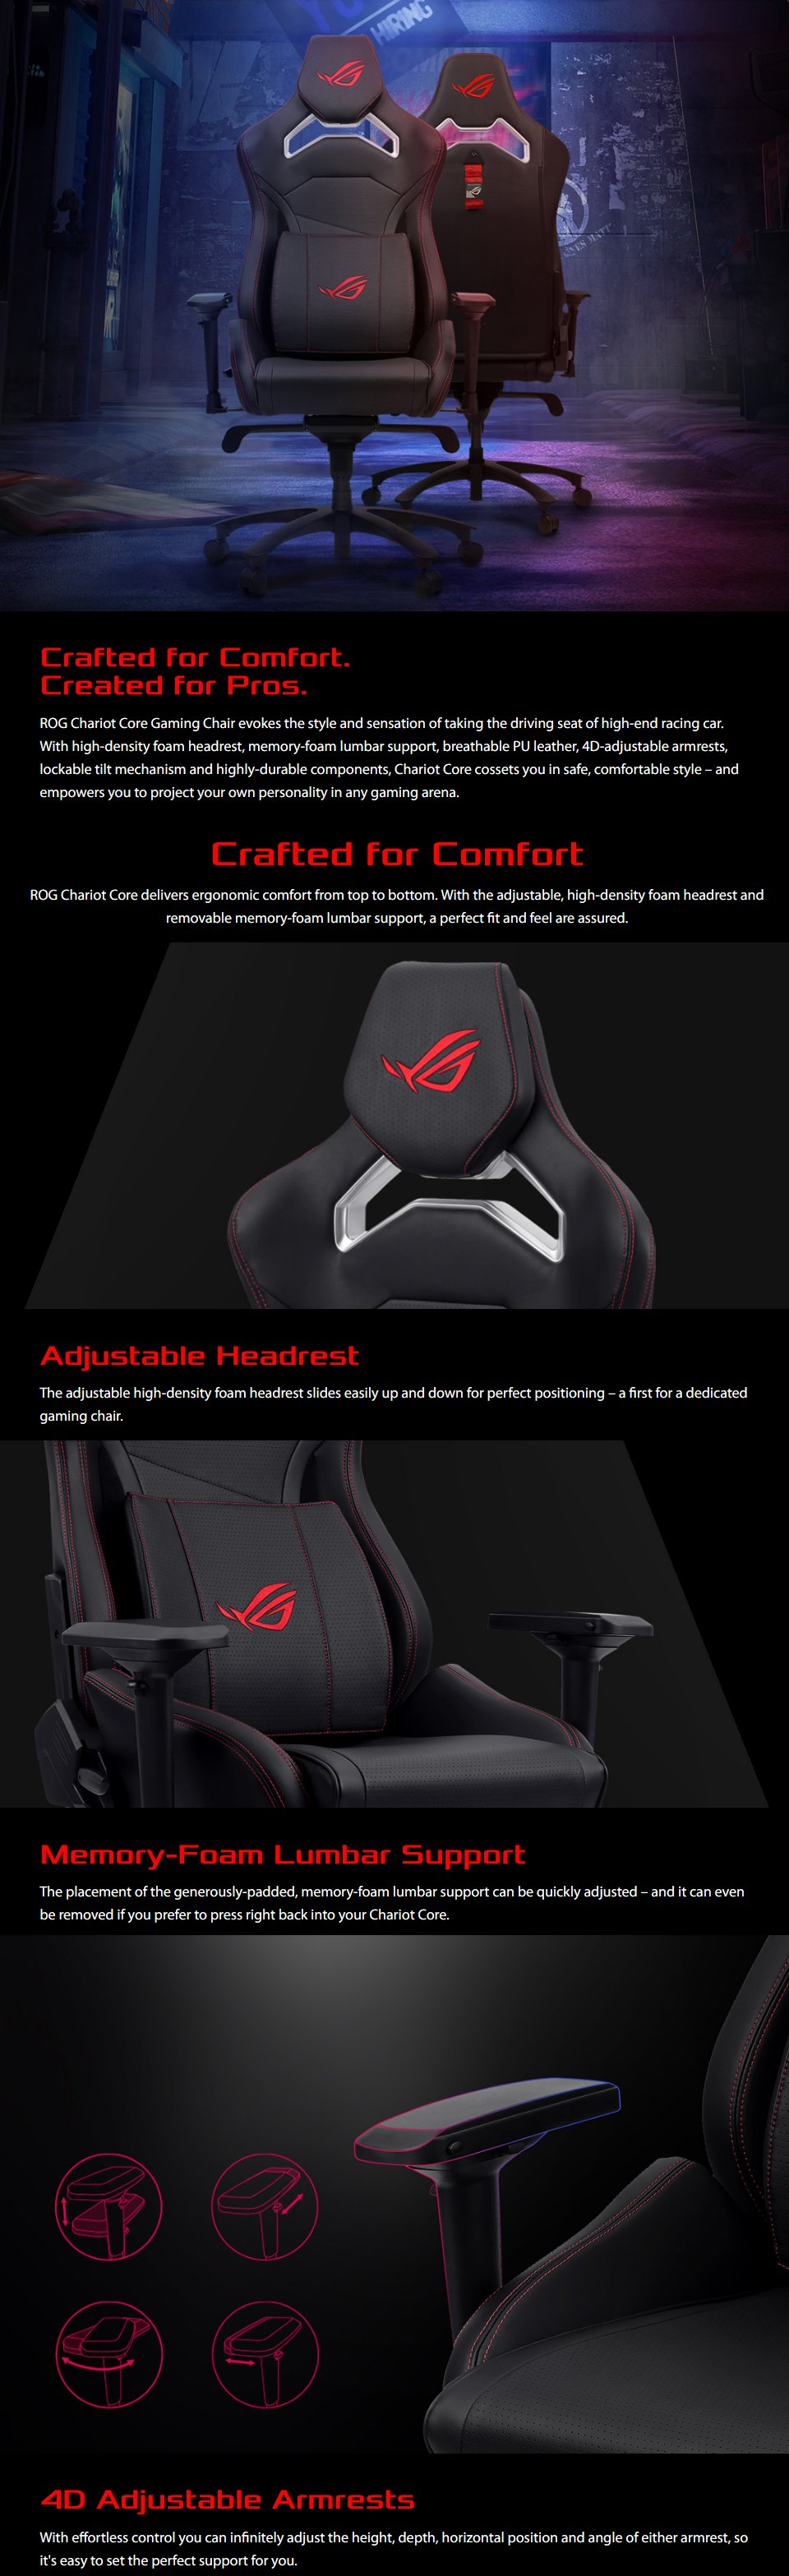 ASUS ROG Chariot Core Gaming Chair features